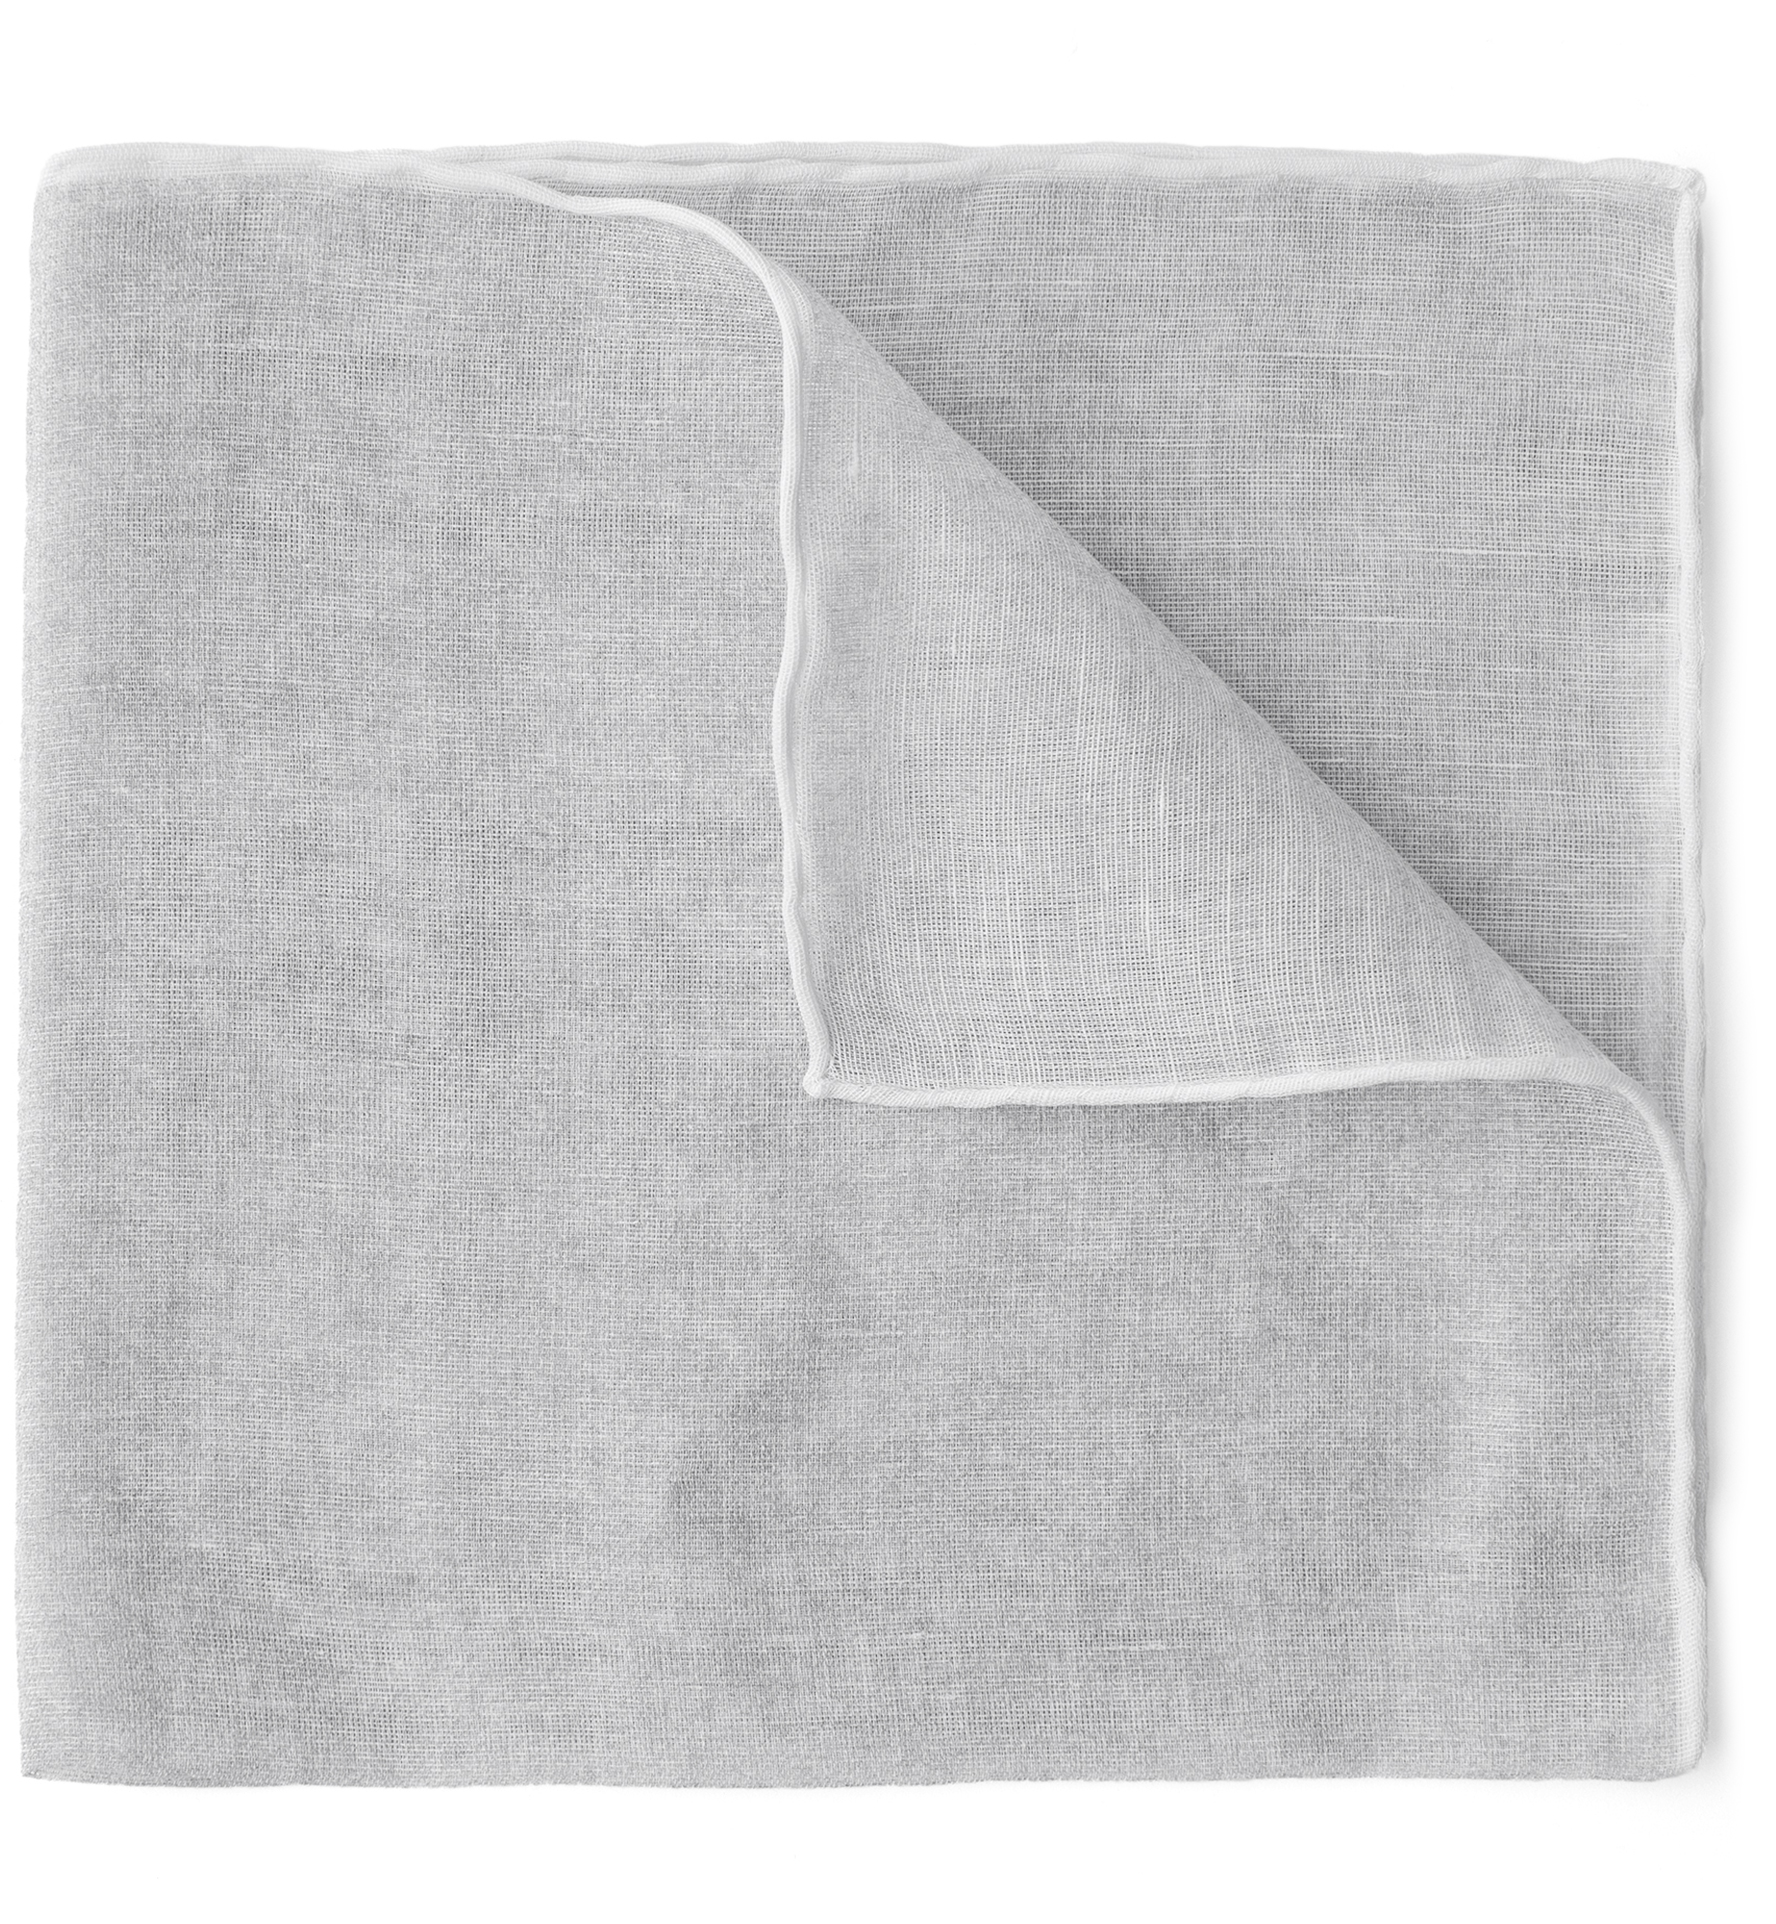 Zoom Image of White Tipped Light Grey Cotton and Linen Pocket Square